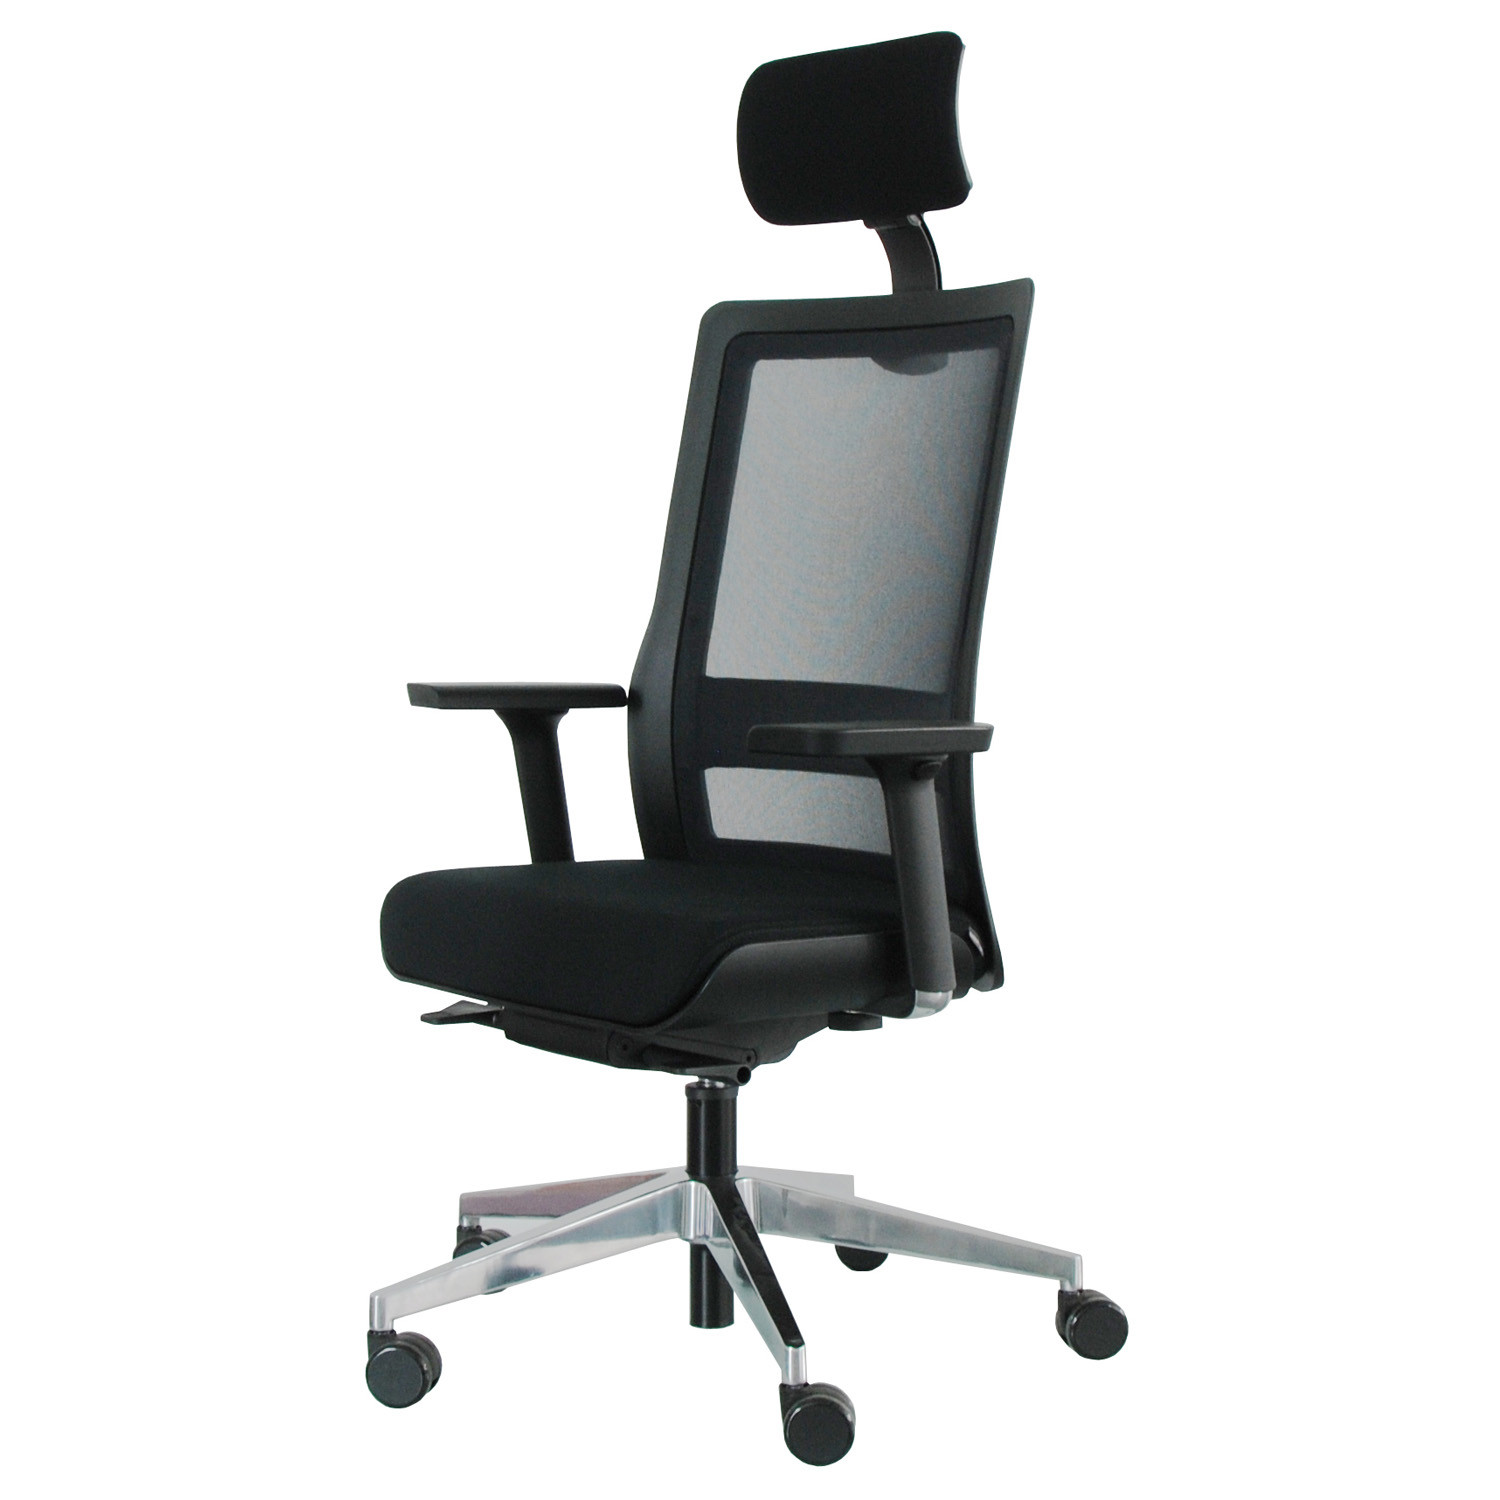 Poi Office Chair with headrest